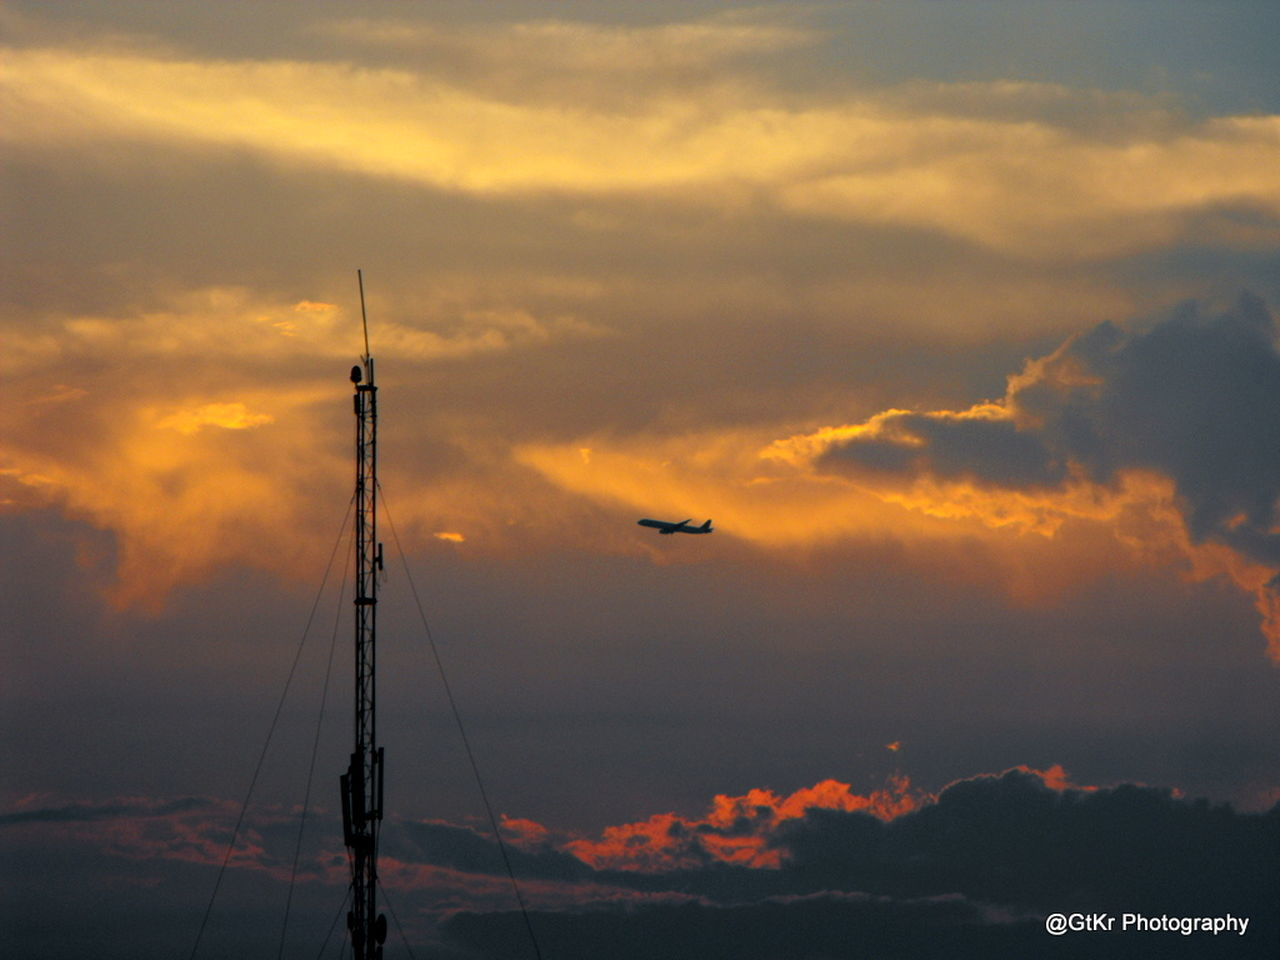 cloud - sky, sunset, sky, silhouette, transportation, flying, orange color, scenics, nature, mode of transport, outdoors, low angle view, beauty in nature, no people, nautical vessel, technology, bird, day, animal themes